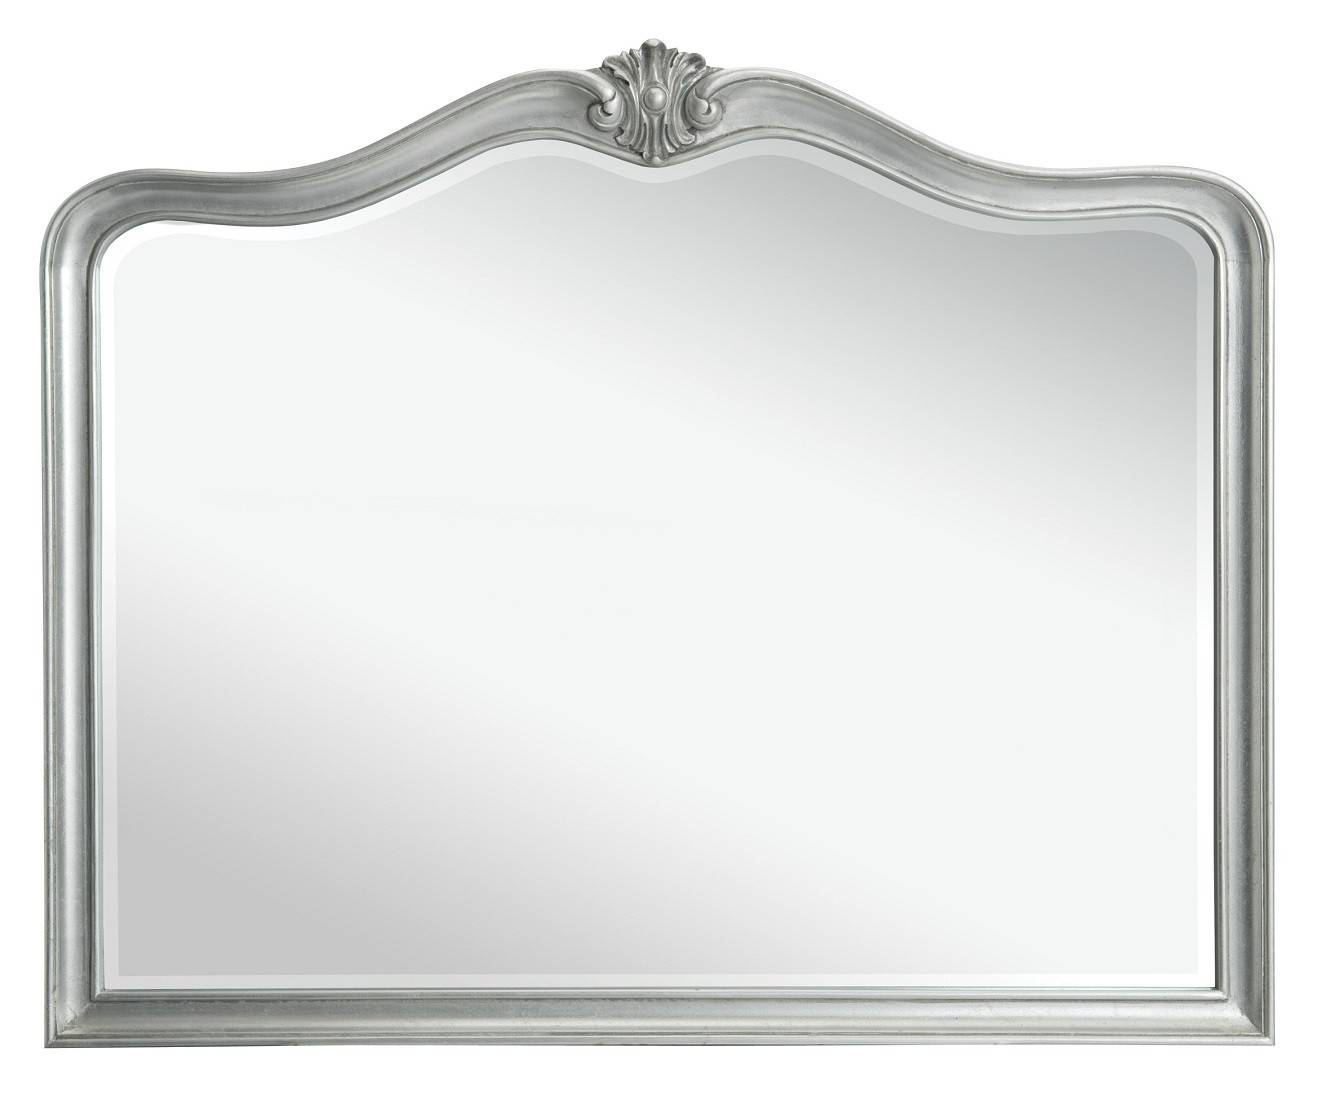 Louis French Silver Leaf Wall Mirror | Oak Furniture Uk for French Chic Mirrors (Image 7 of 15)